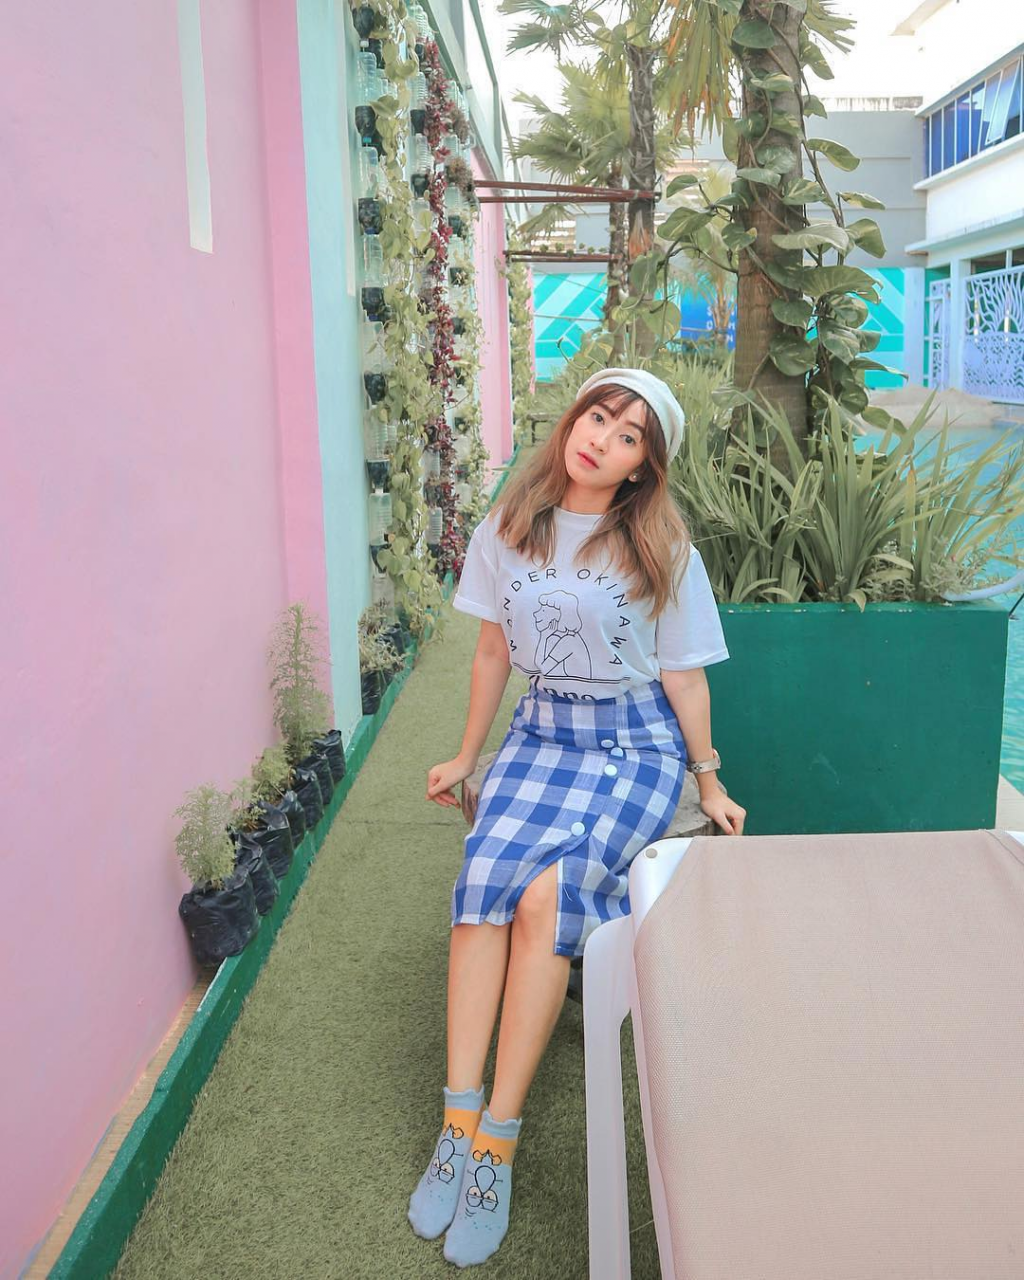 take your OOTD shots at the pastel walls beside the pool